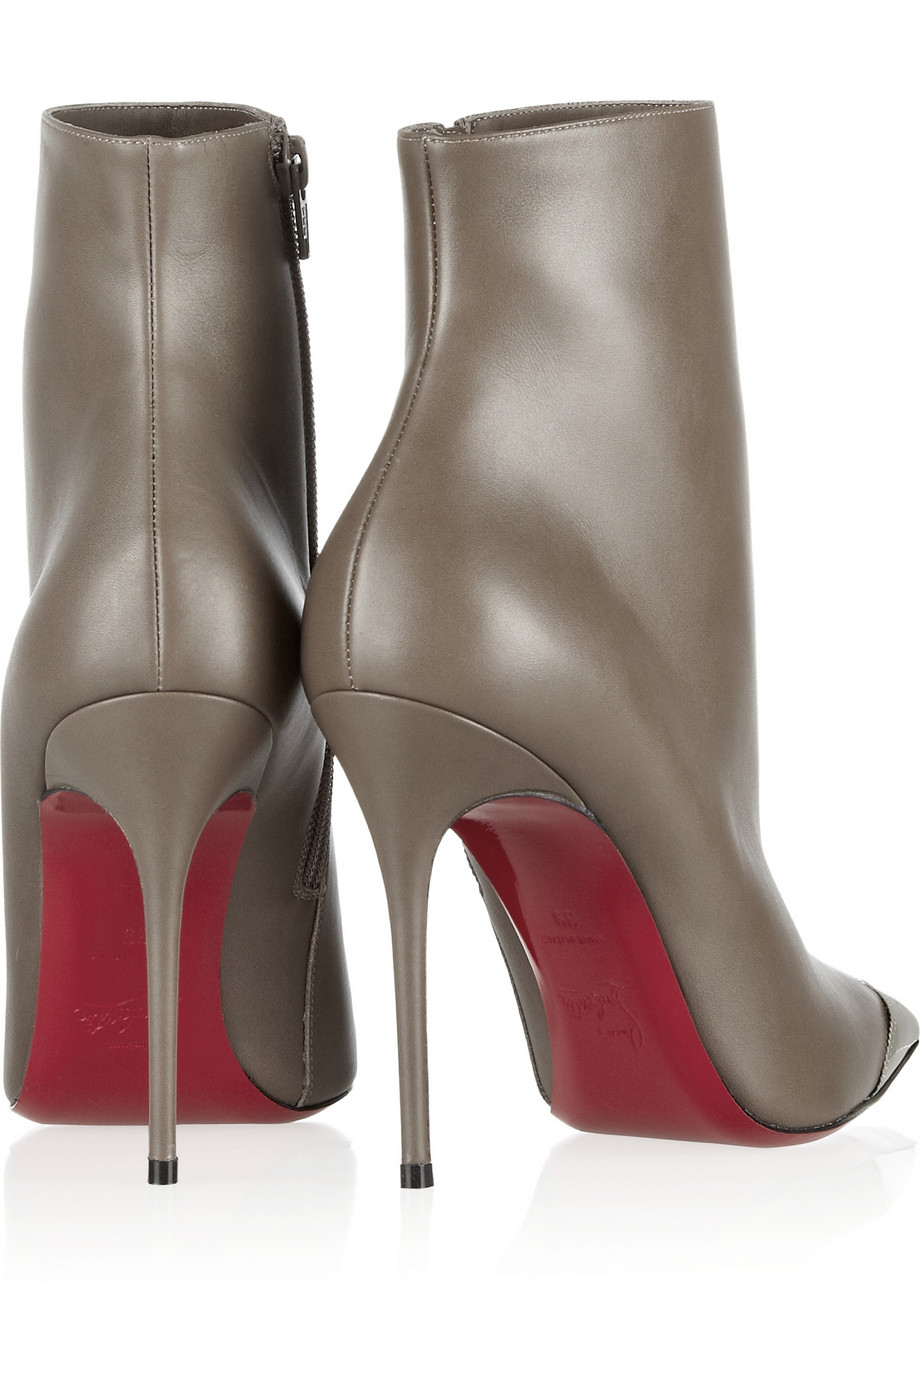 shoes replica usa - christian louboutin ankle booties Black leather silver-tone cap ...